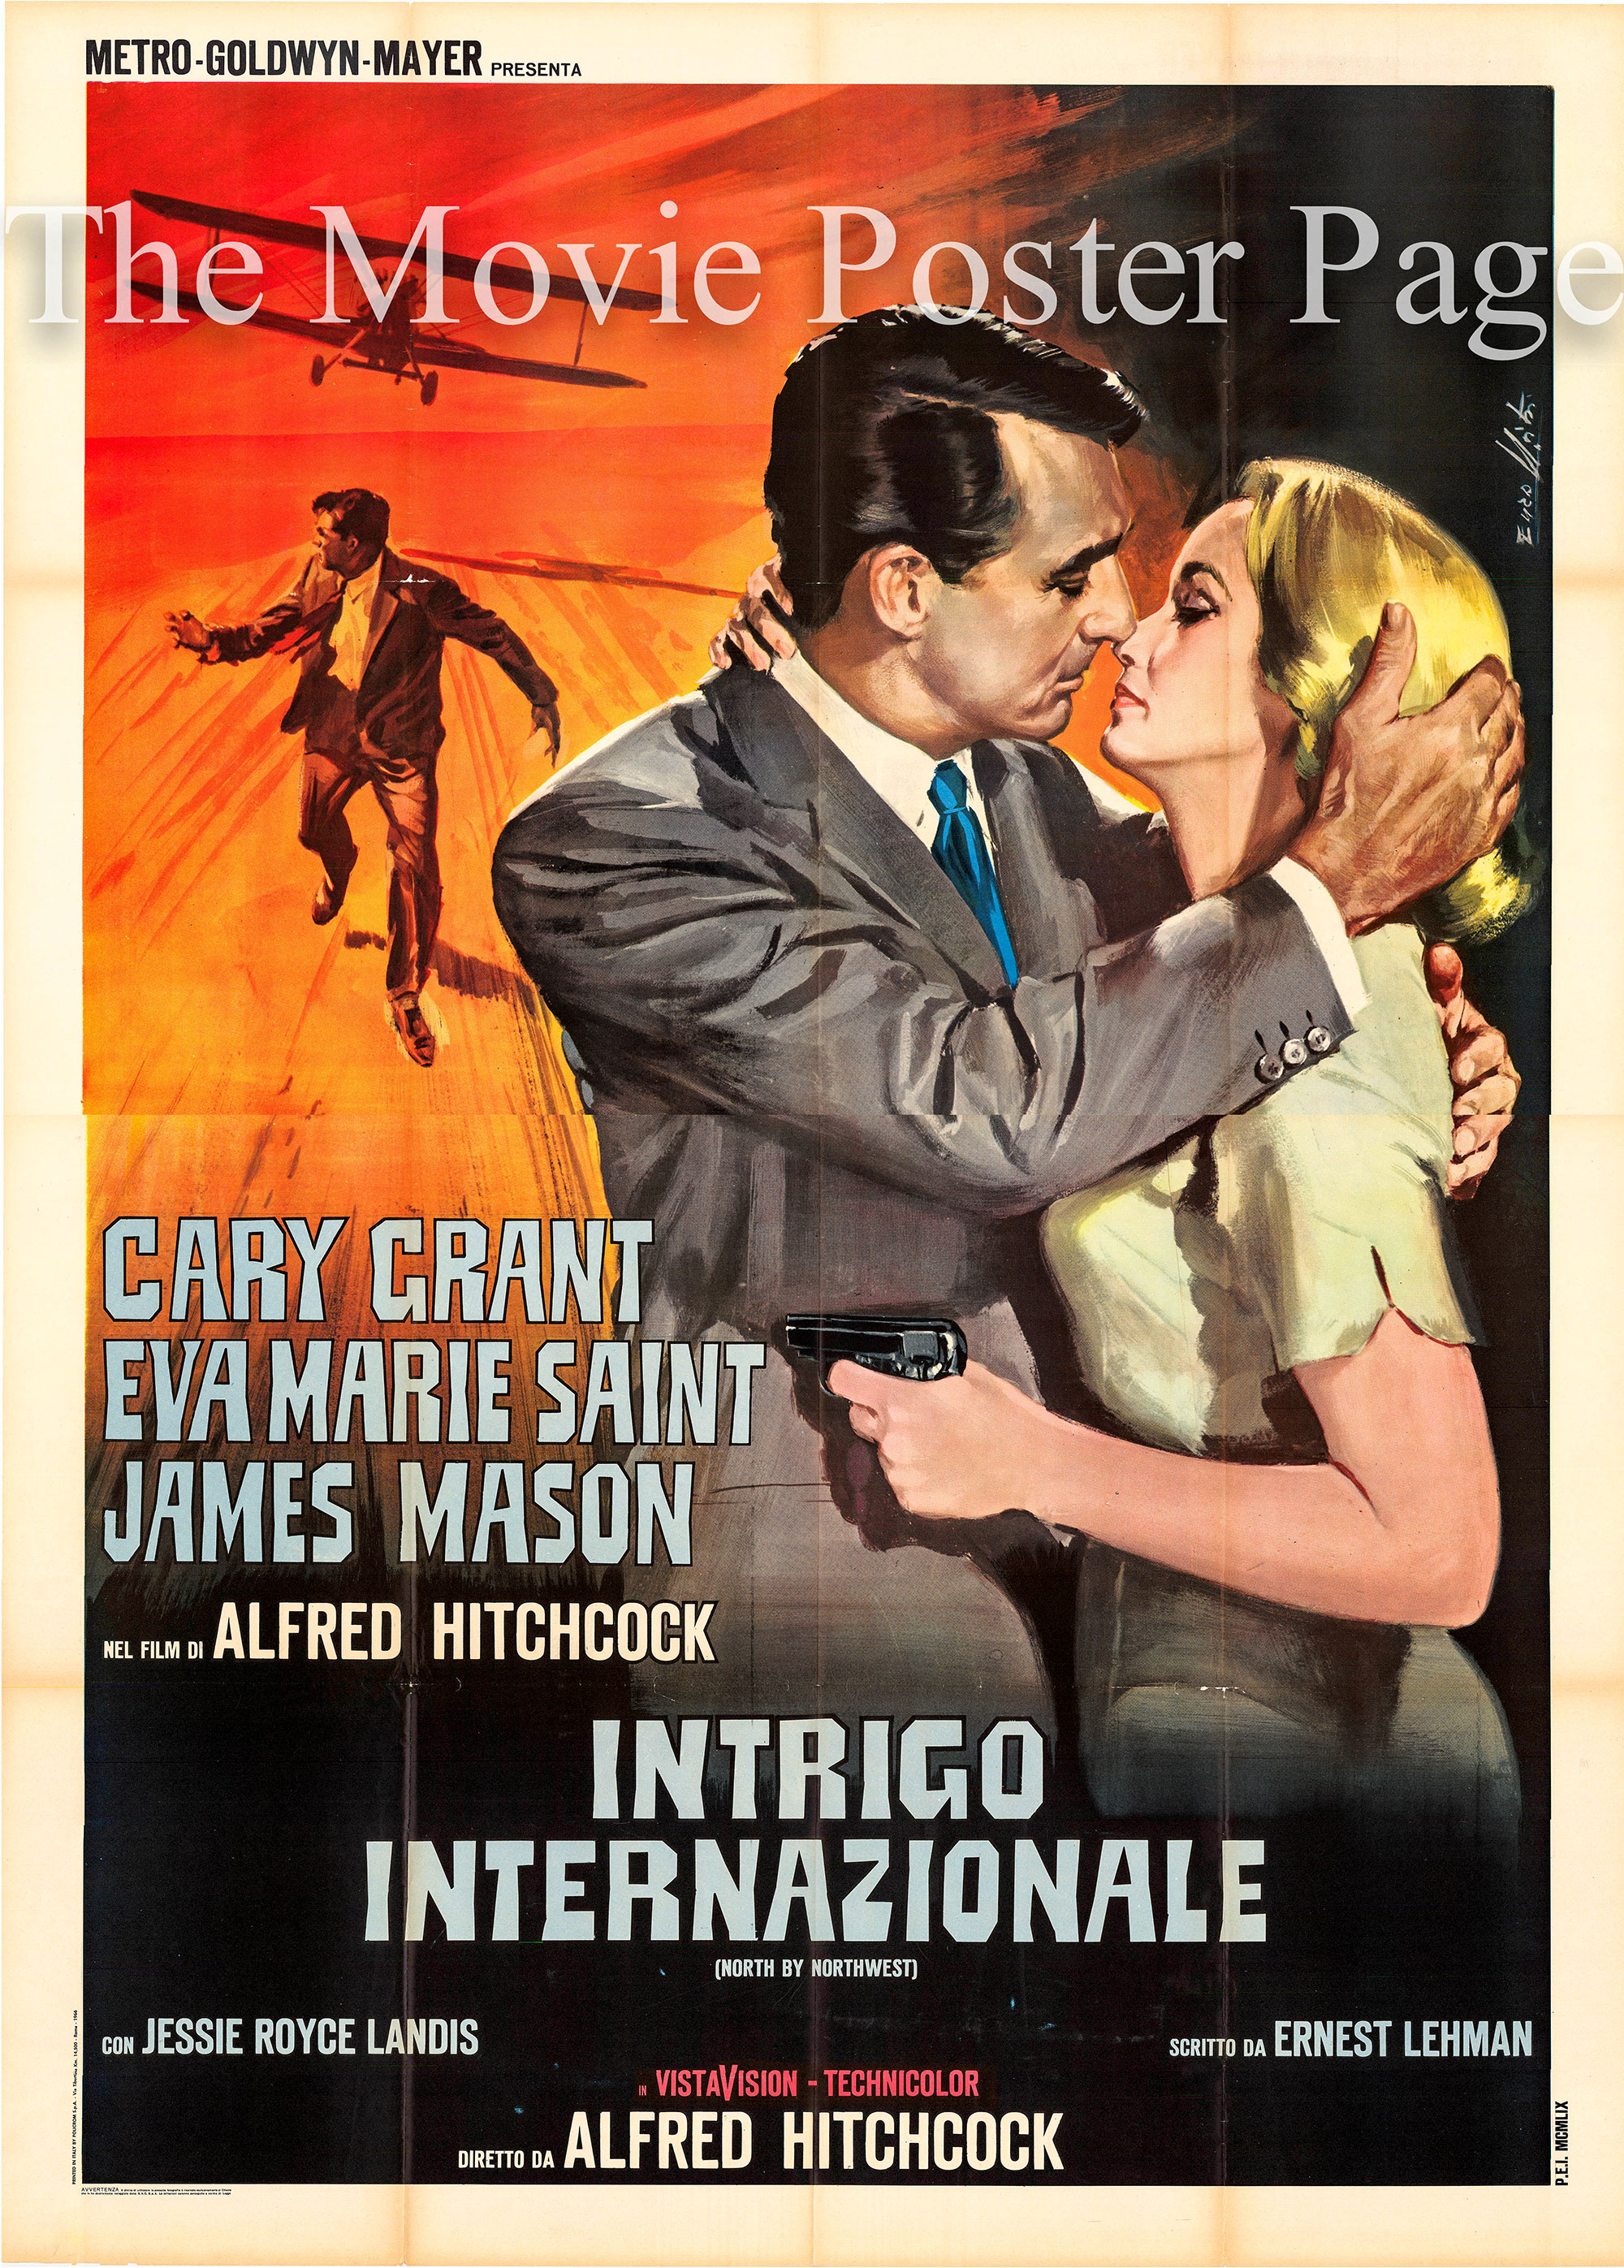 Pictured is an Italian four-sheet poster for a 1976 rerelease of the 1959 Alfred Hitchcock film North by Northwest starring Cary Grant.